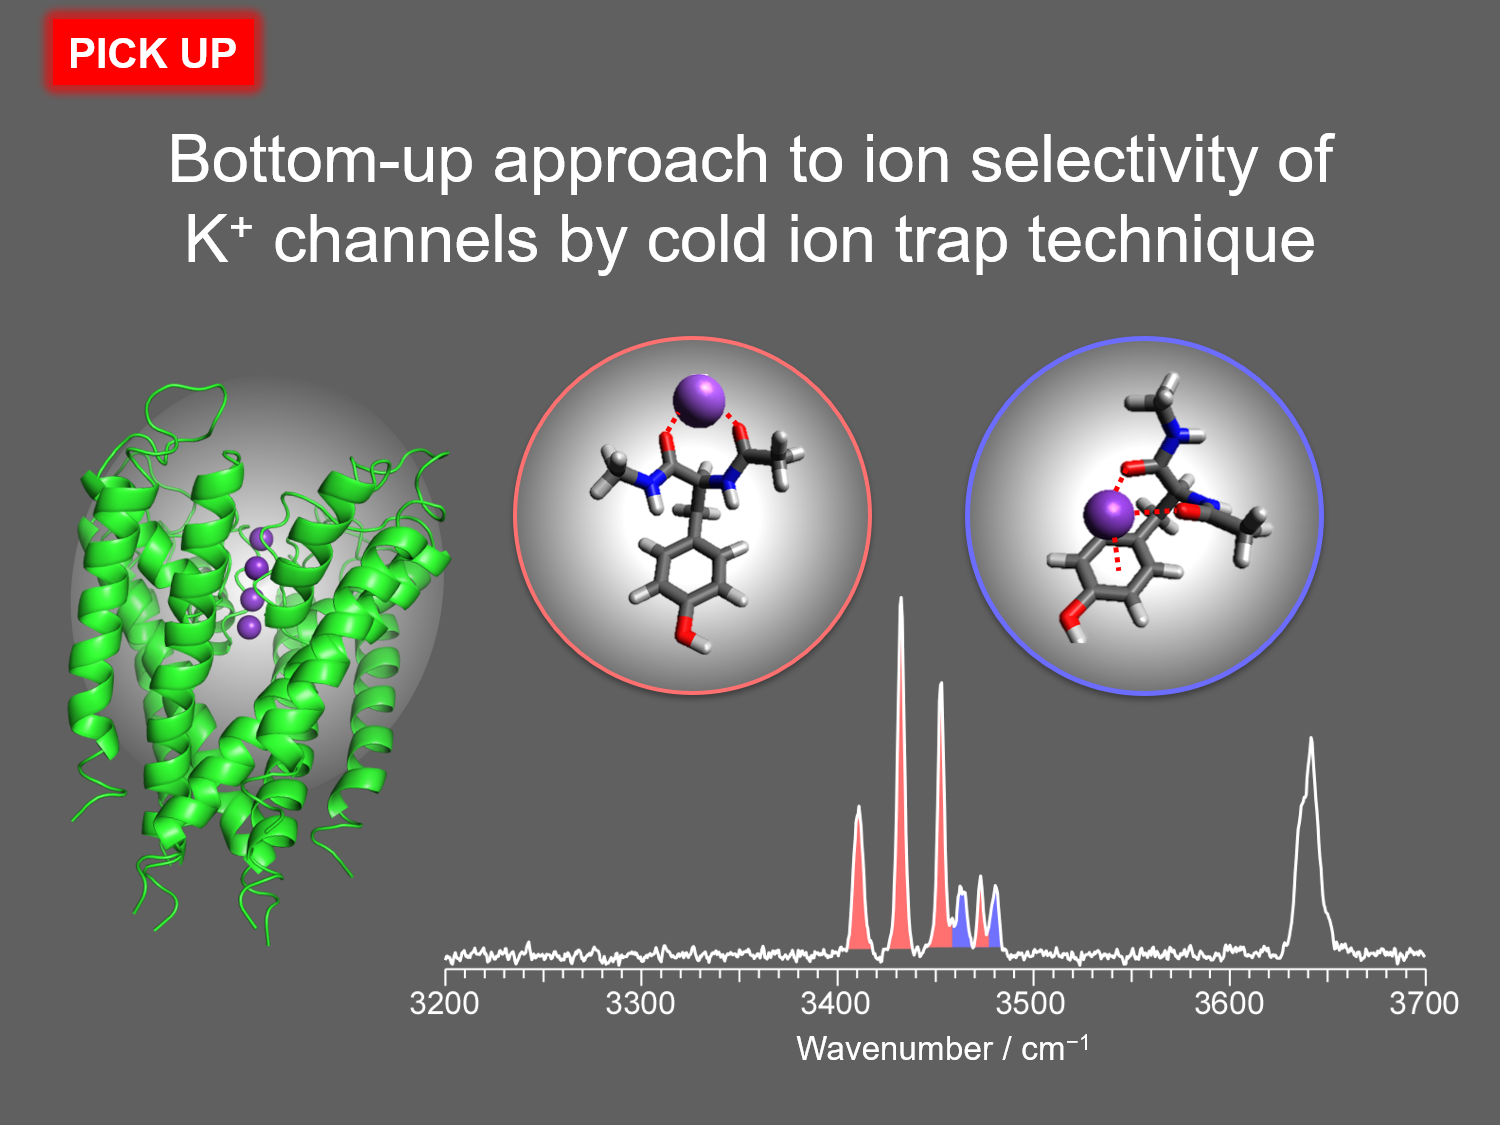 Bottom-up approach to ion selectivity of K<sup>+</sup> channels by cold ion trap technique